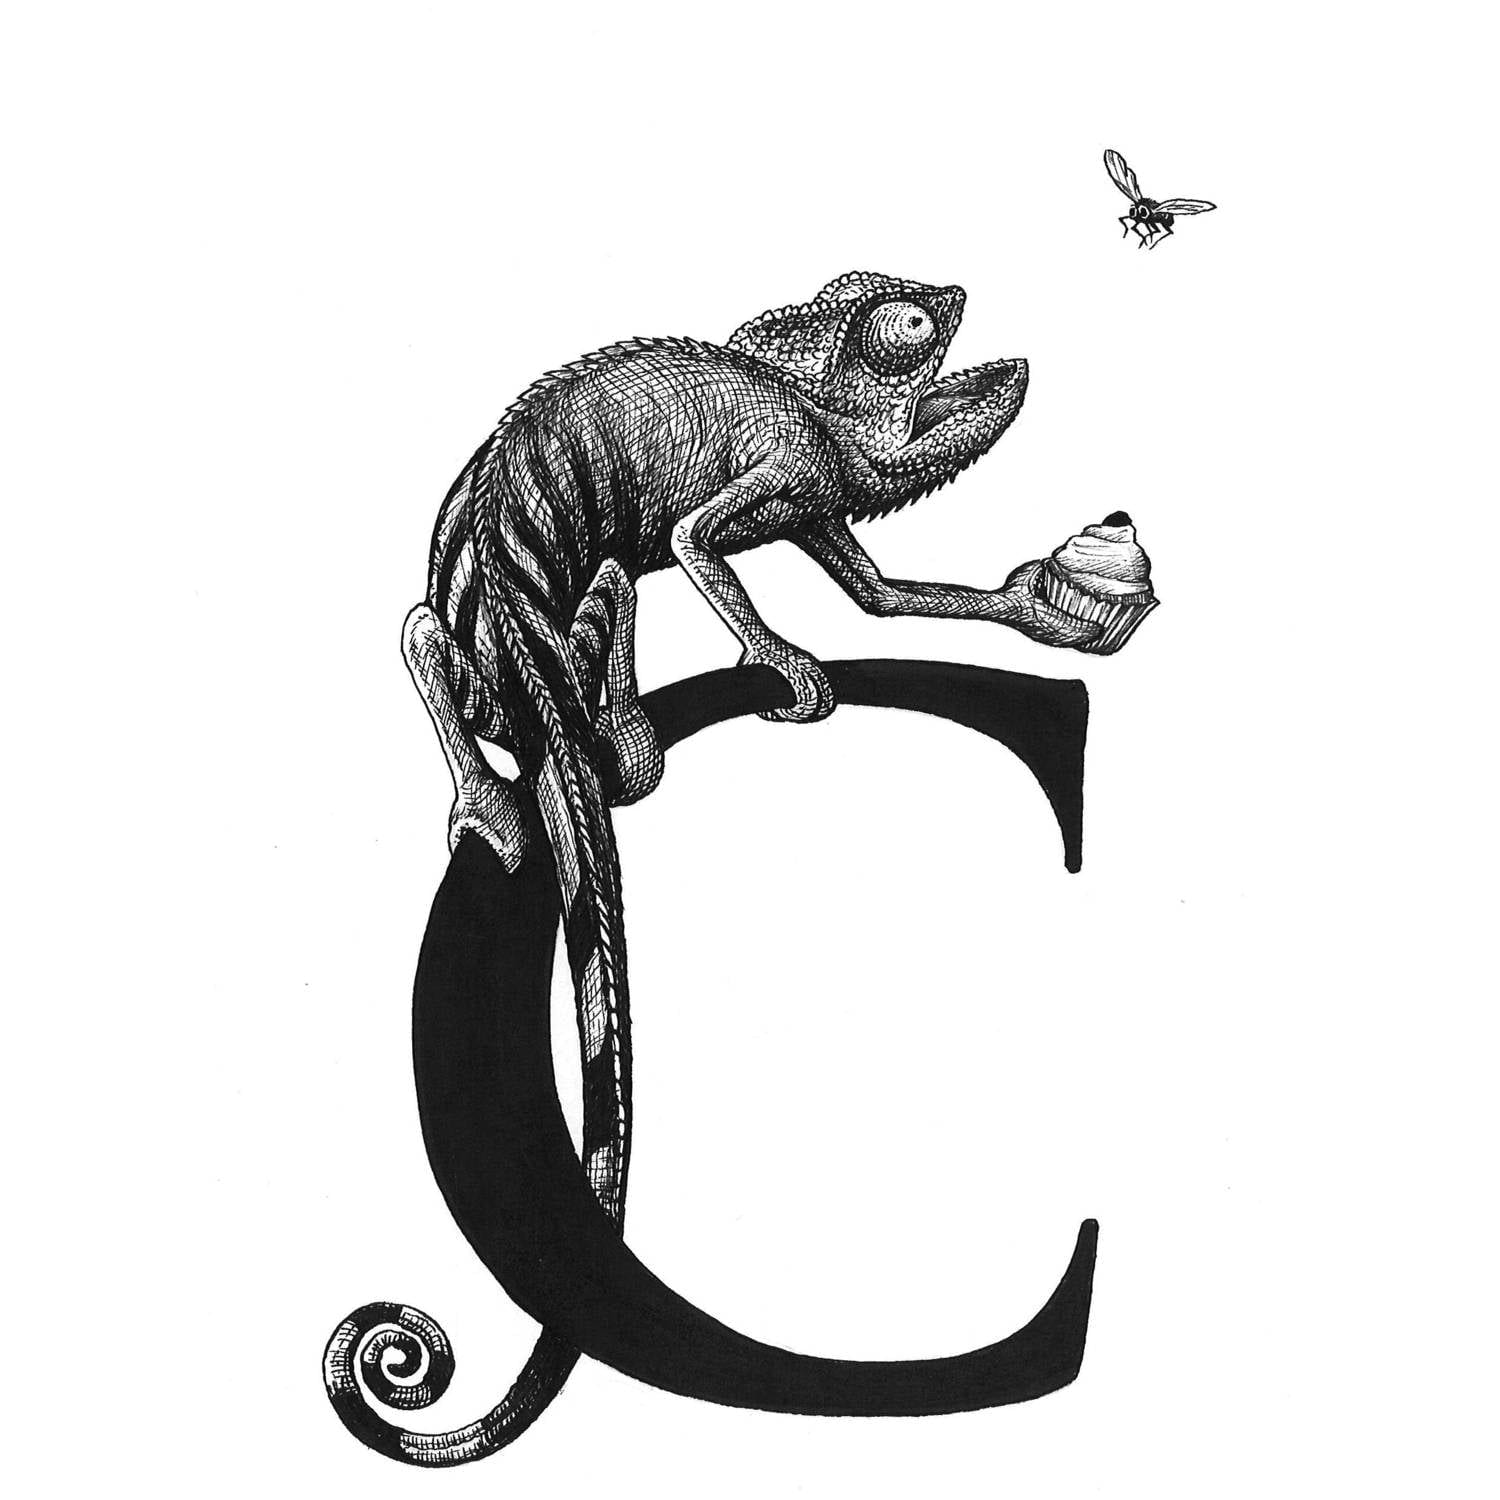 Cheeky Chameleon Intricate Ink-0